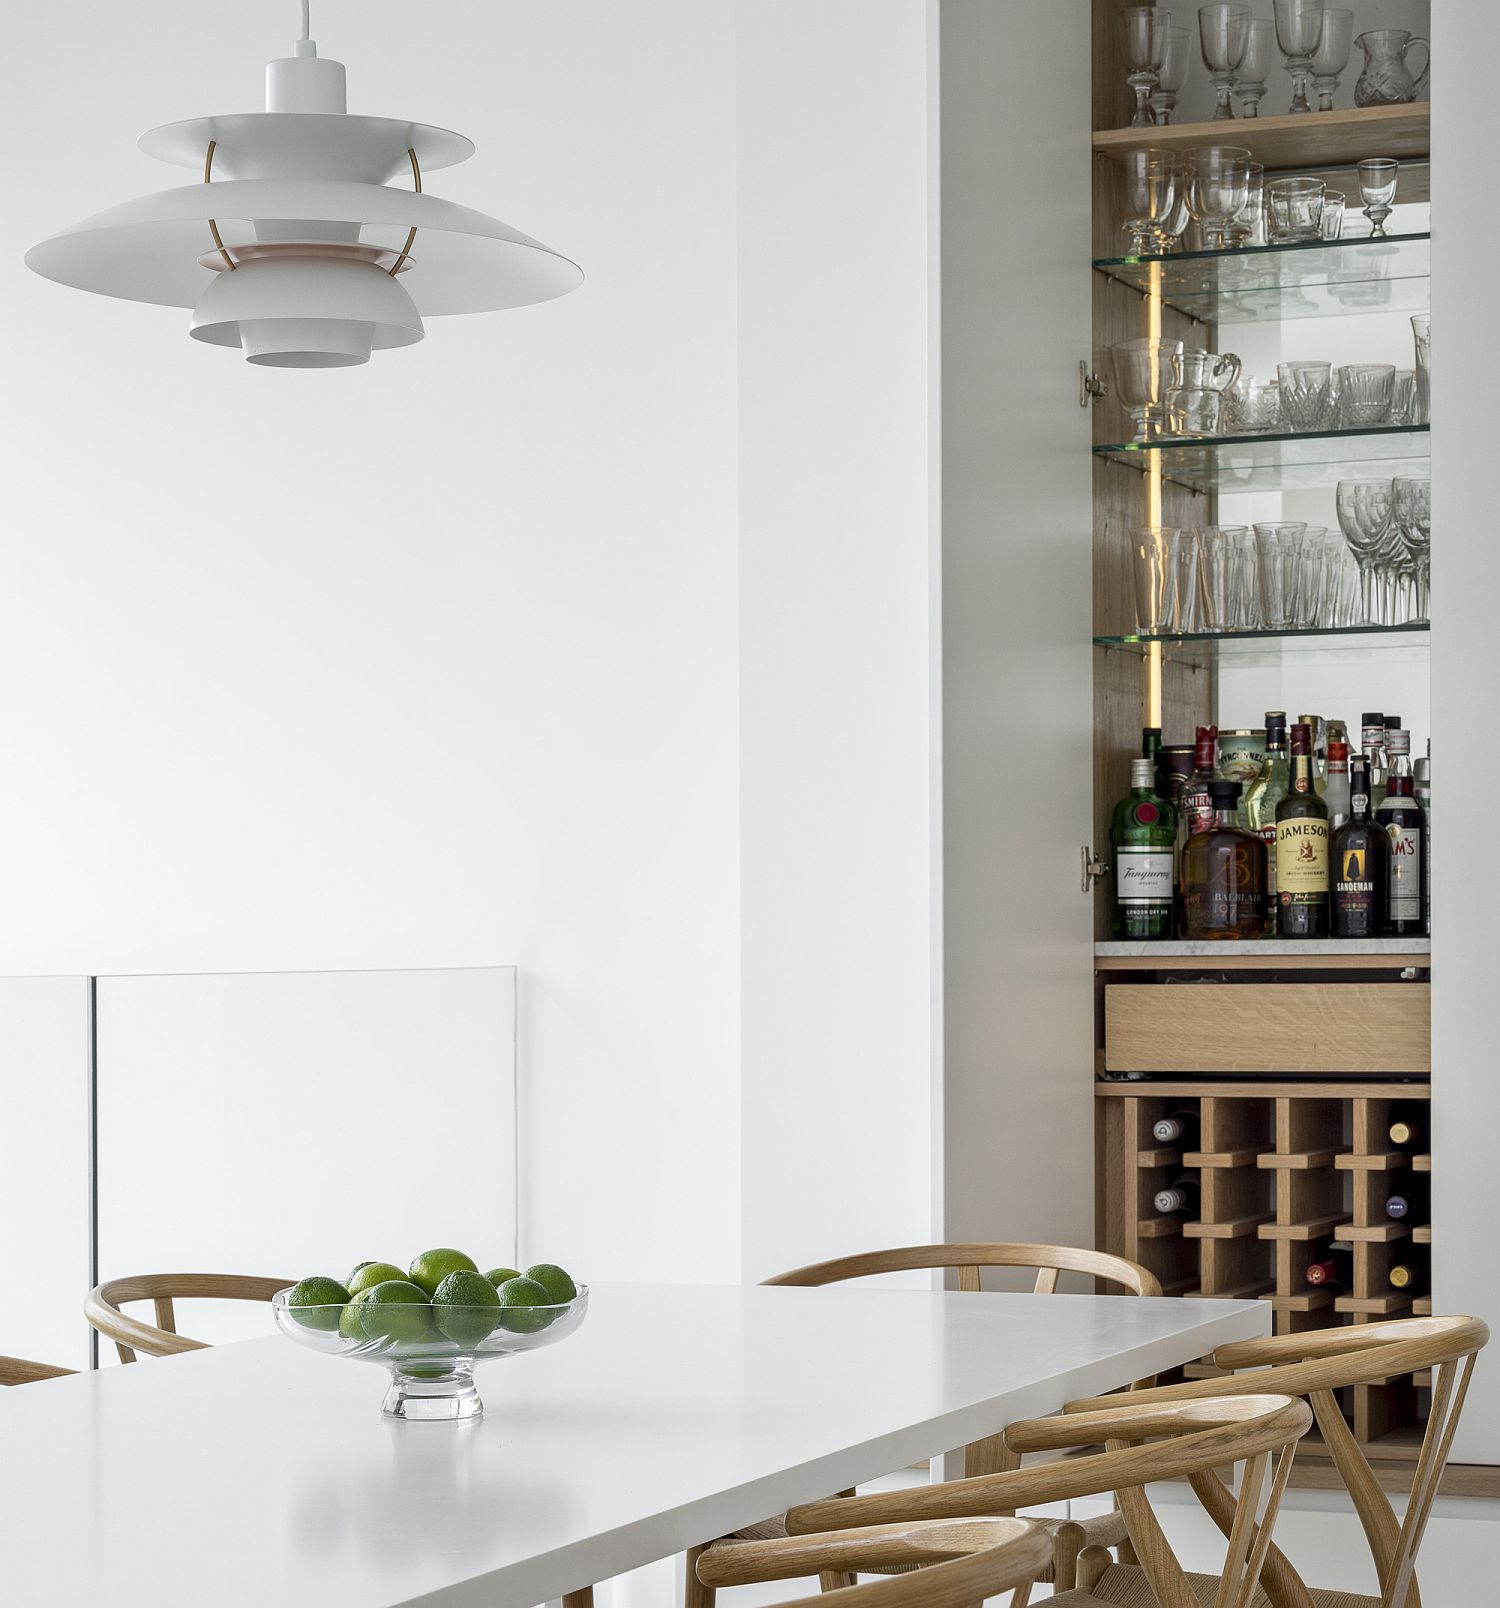 Combining the home bar setting with the dining space